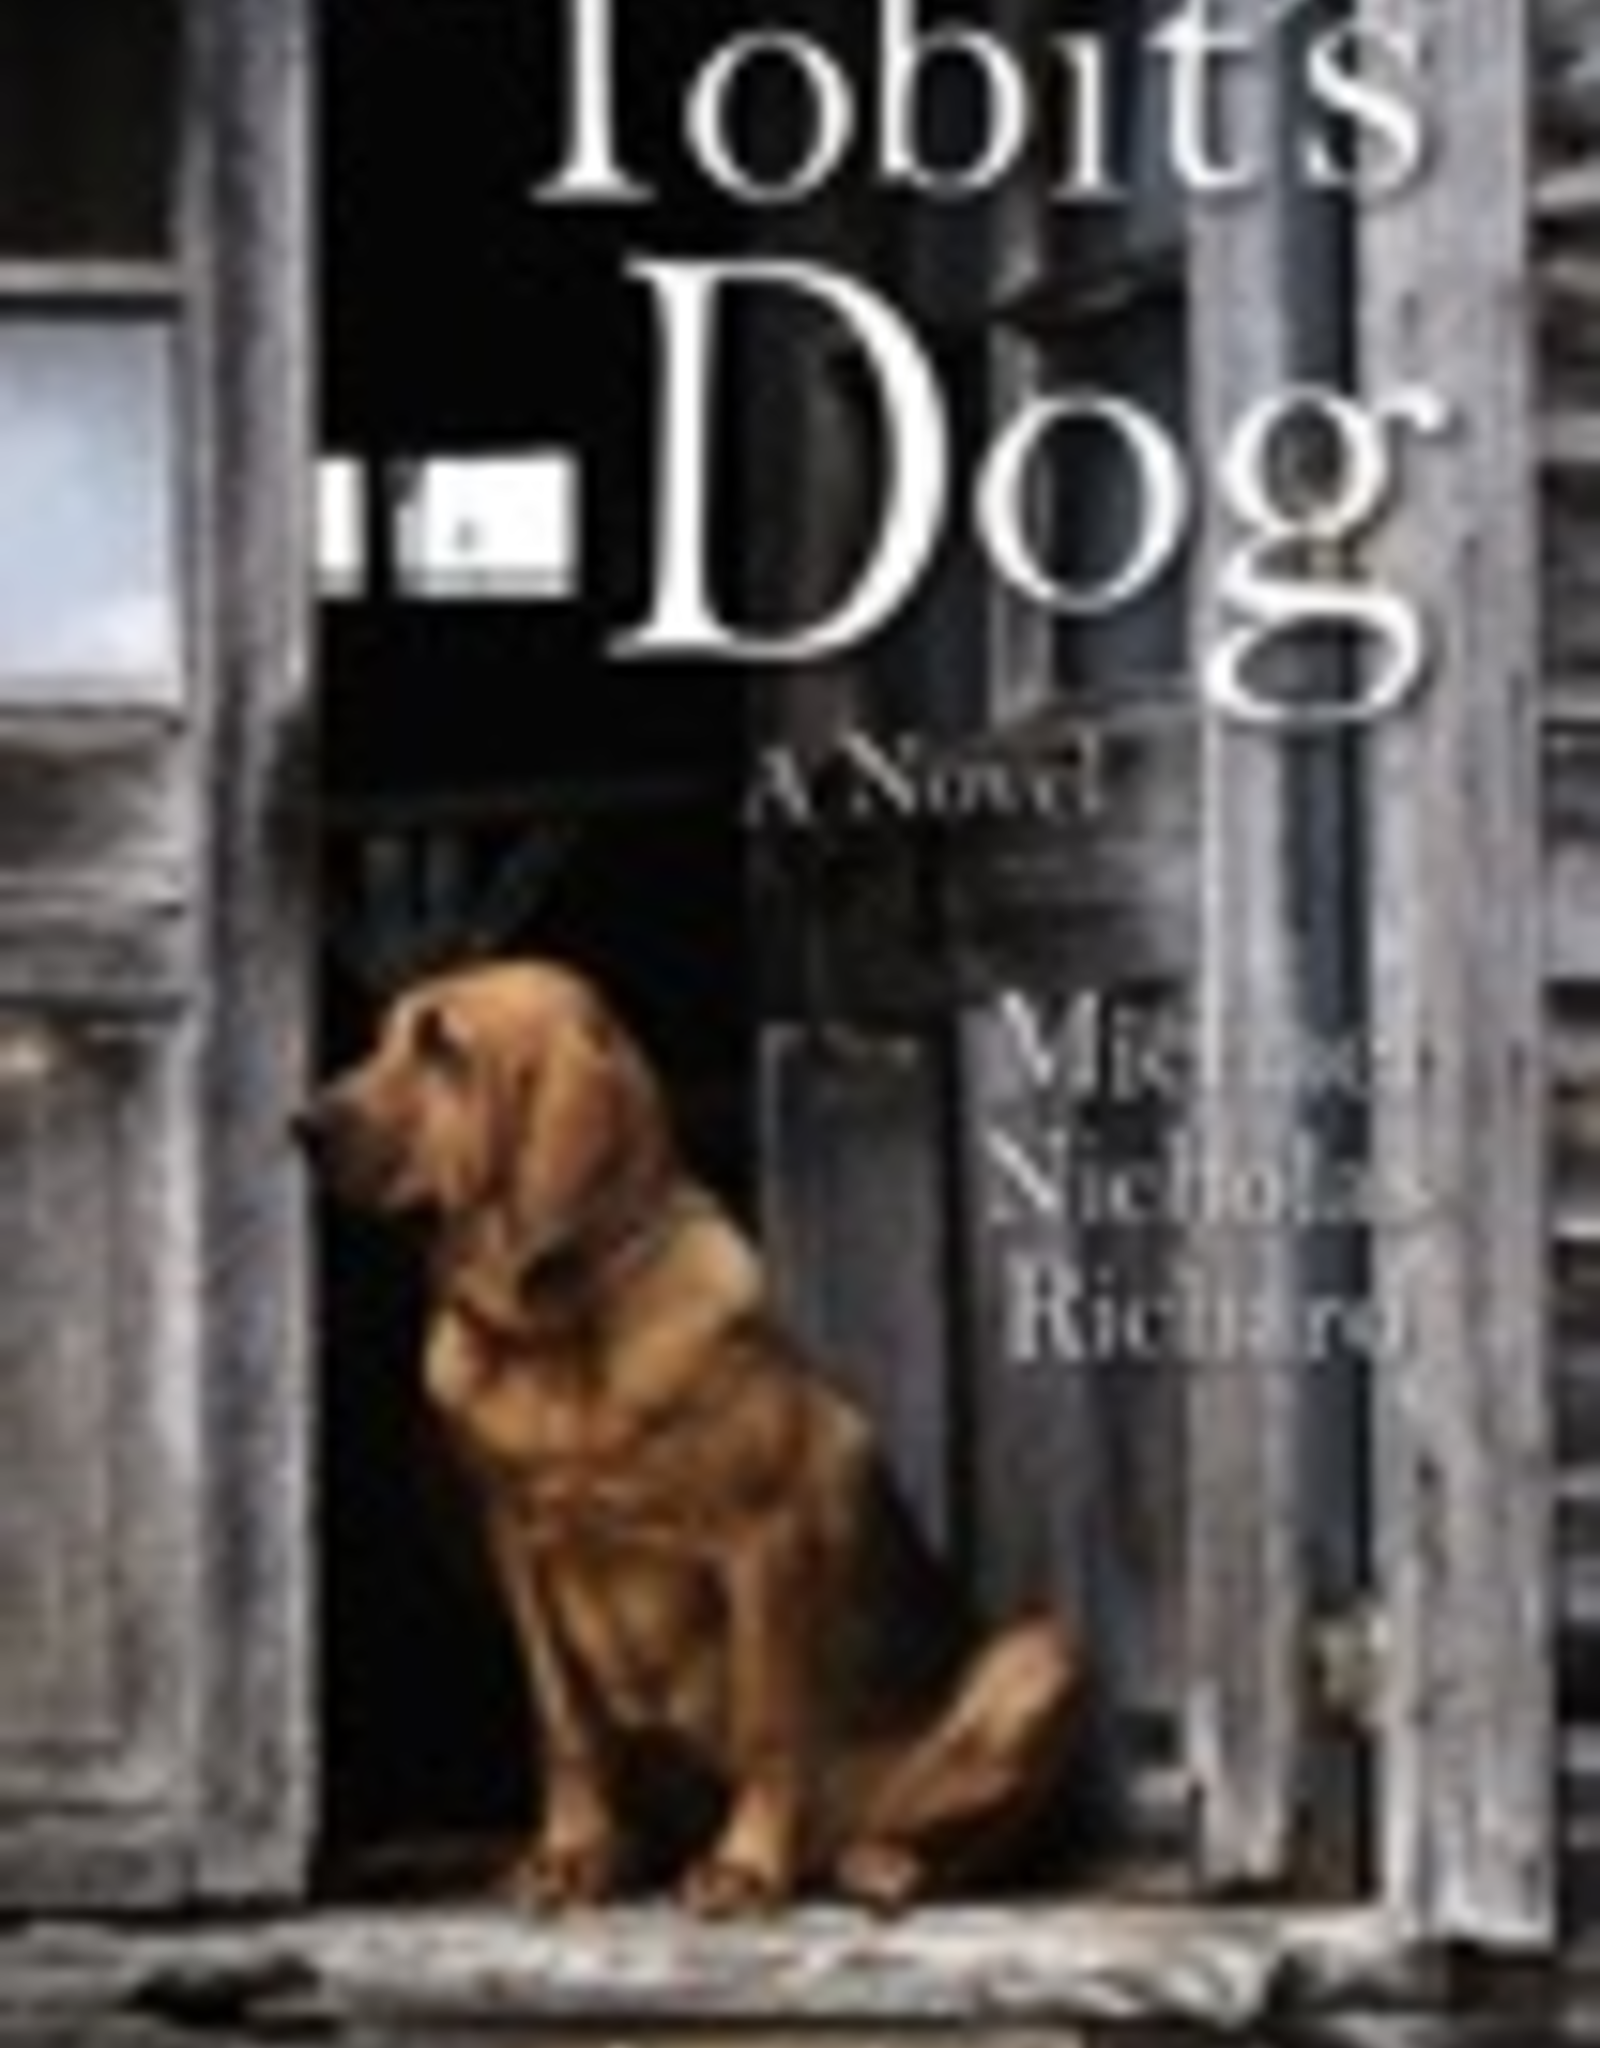 Ignatius Press Tobit's Dog:  A Novel, by Michael N. Richard (paperback)